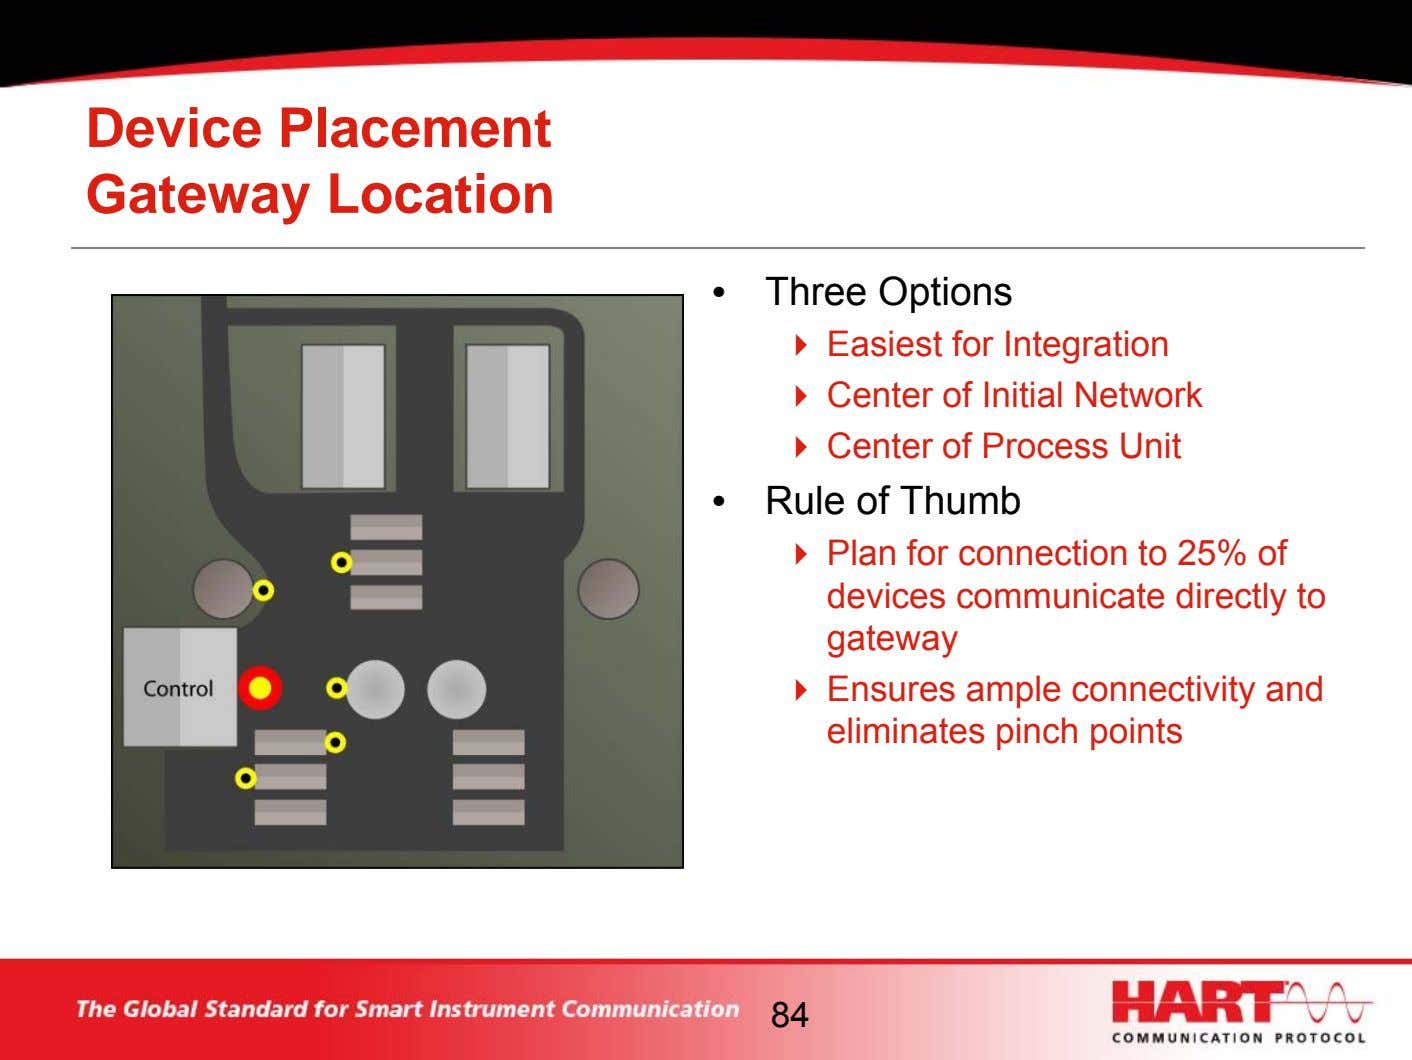 Device Placement Gateway Location • Three Options Easiest for Integration Center of Initial Network Center